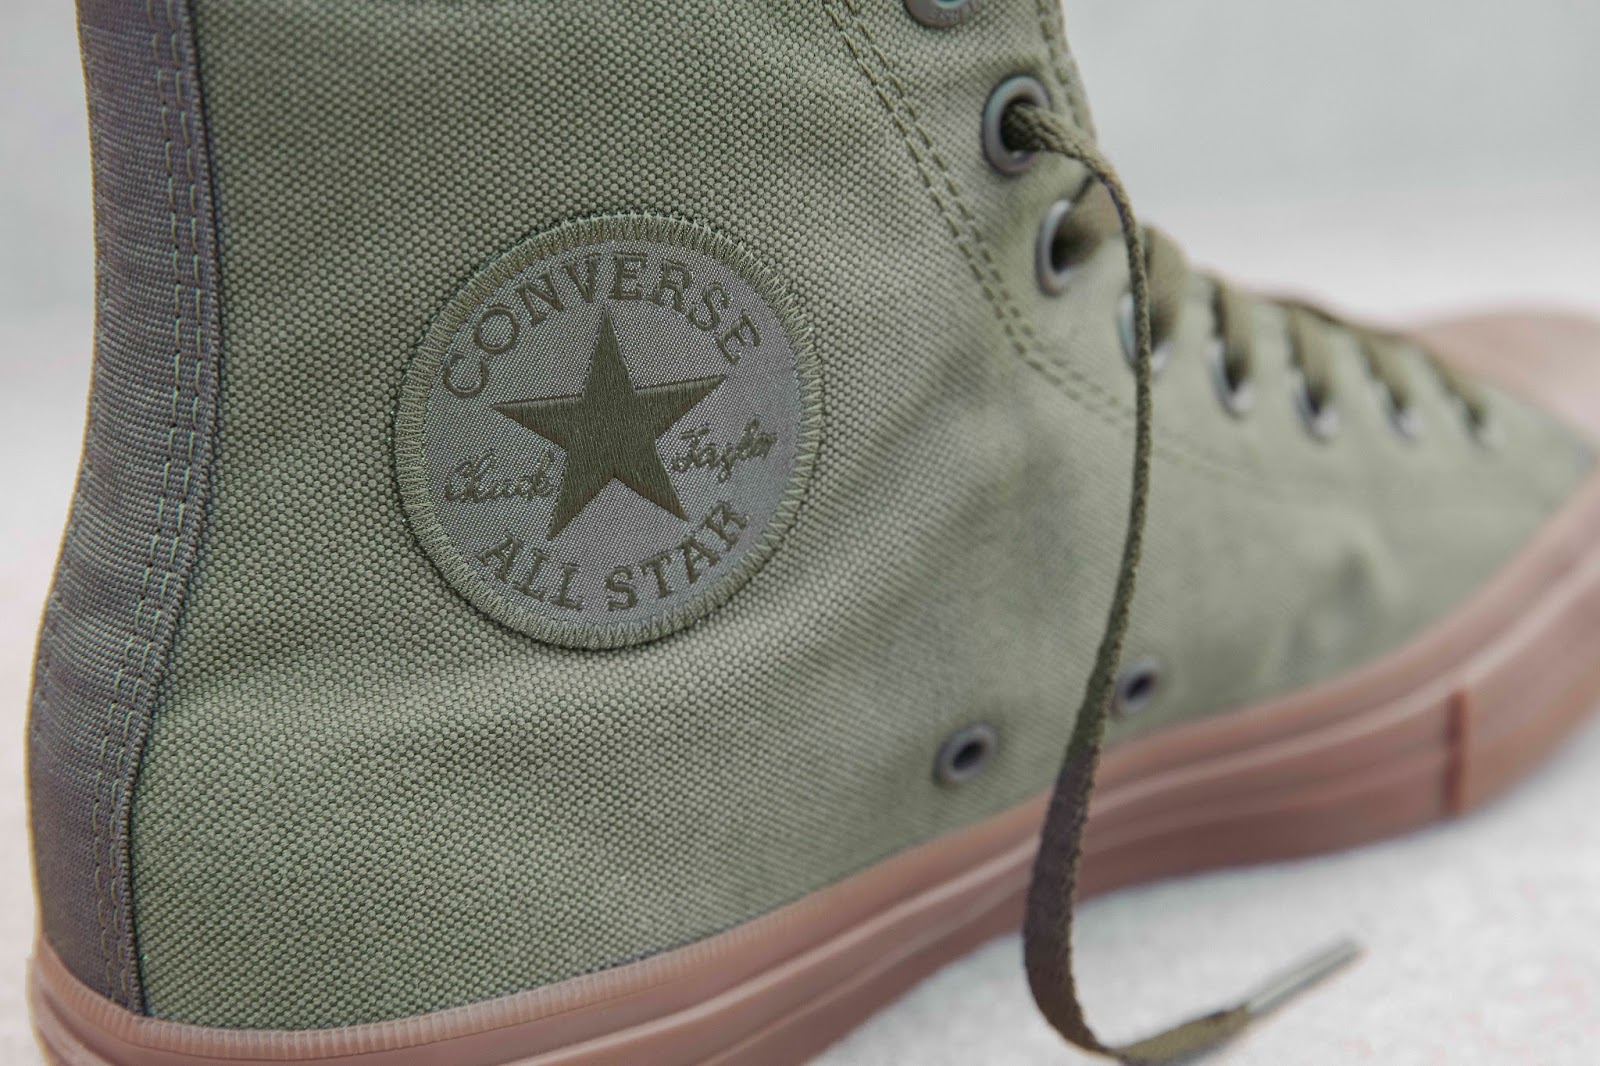 626bf81fb186 Highlights of the Converse Chuck Taylor All Star II Gum also include  premium canvas upper